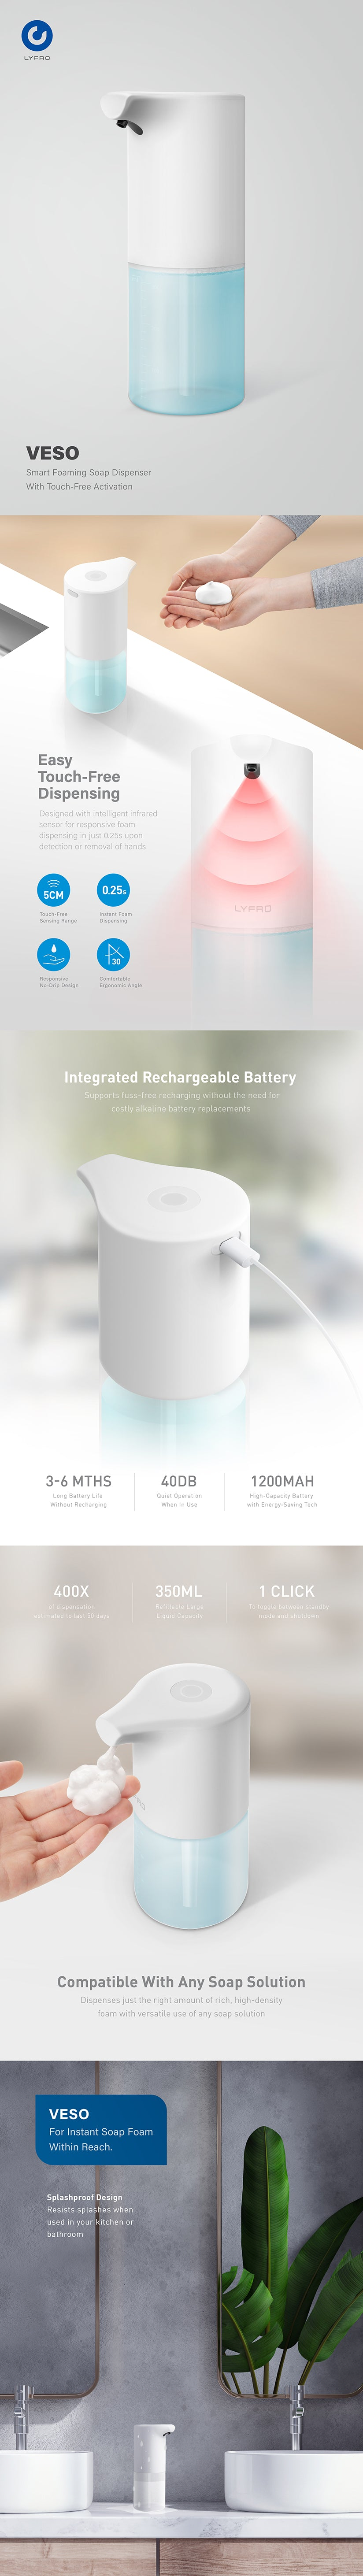 UNIQ | LYFRO Smart Foaming Soap Dispenser With Touch-Free Activation